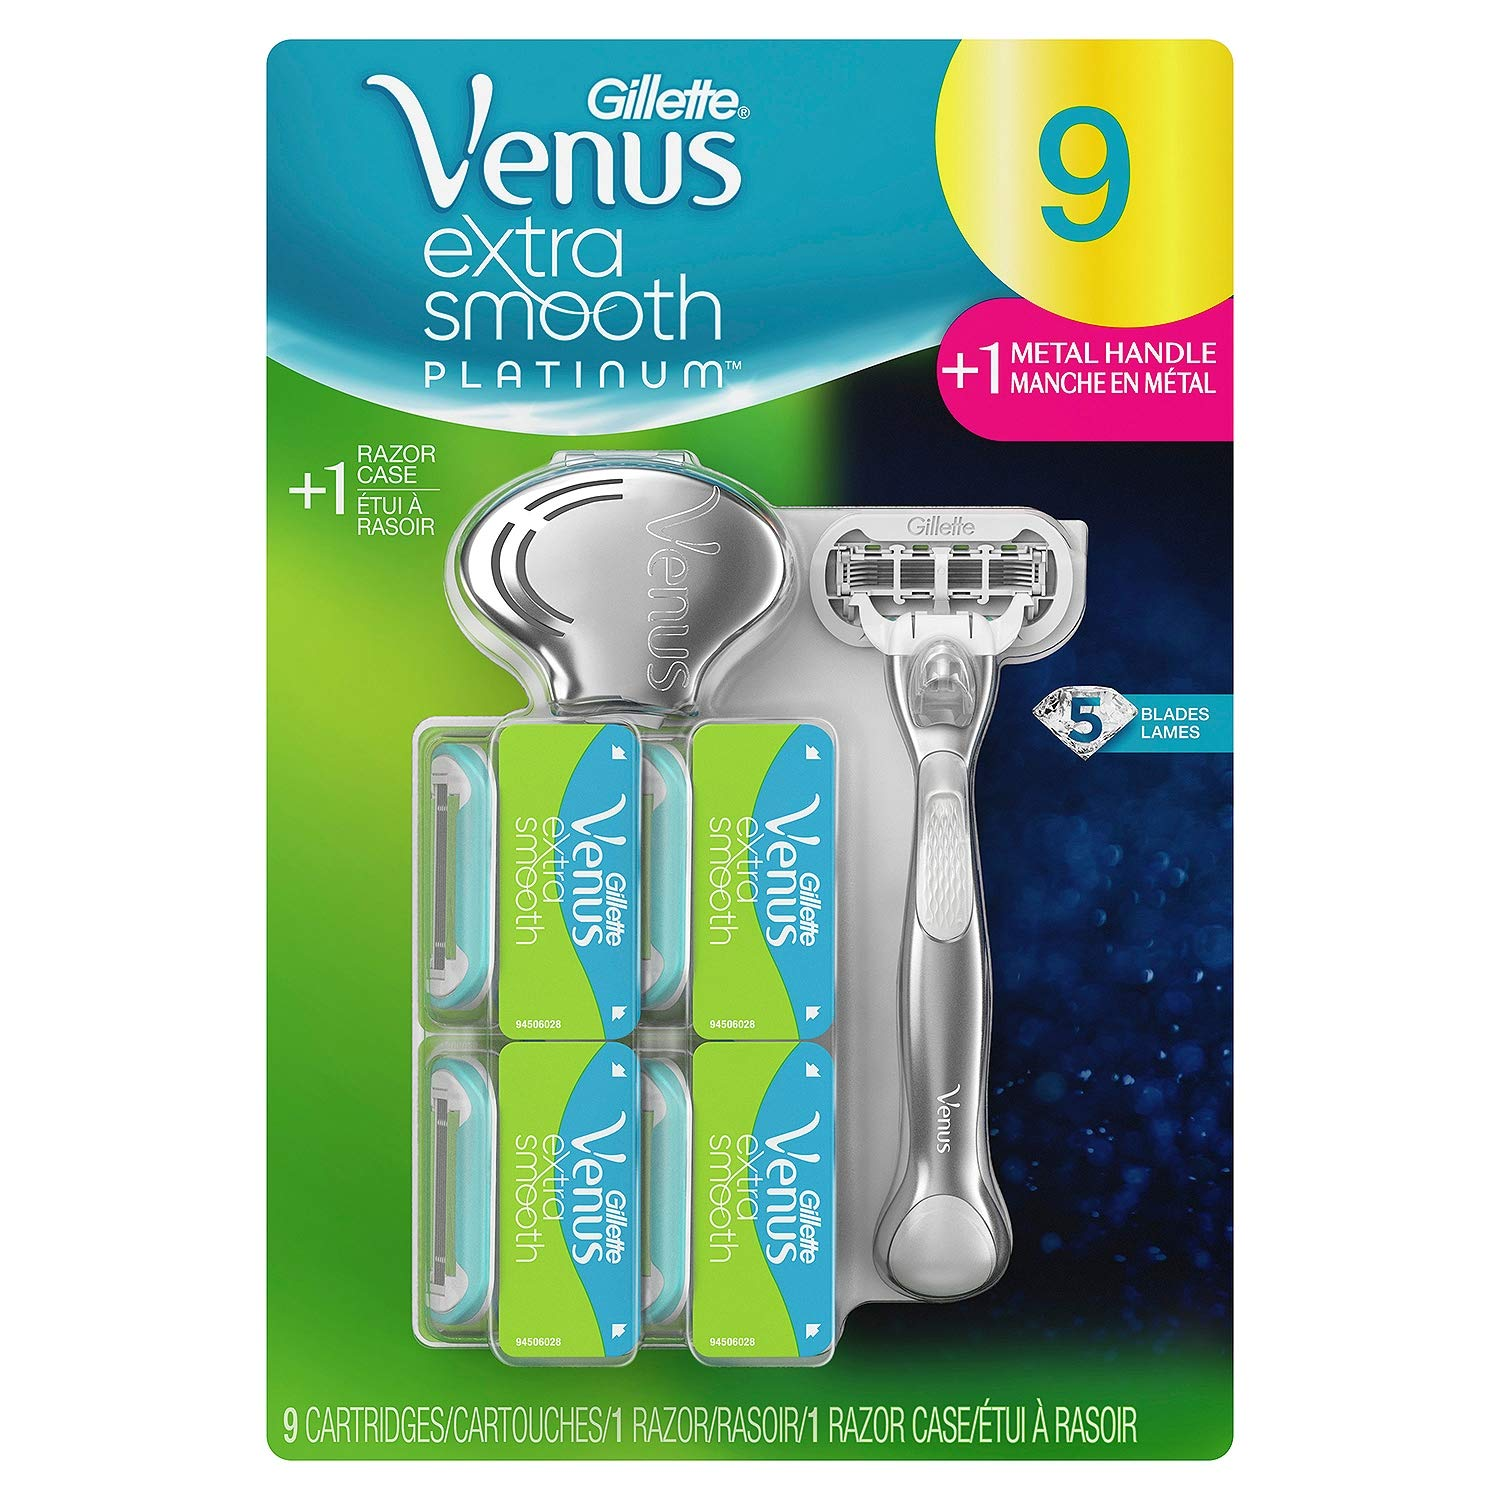 Venus Extra Smooth Platinum Razor, Handle + 9 Blade Refills + Razor Case AS